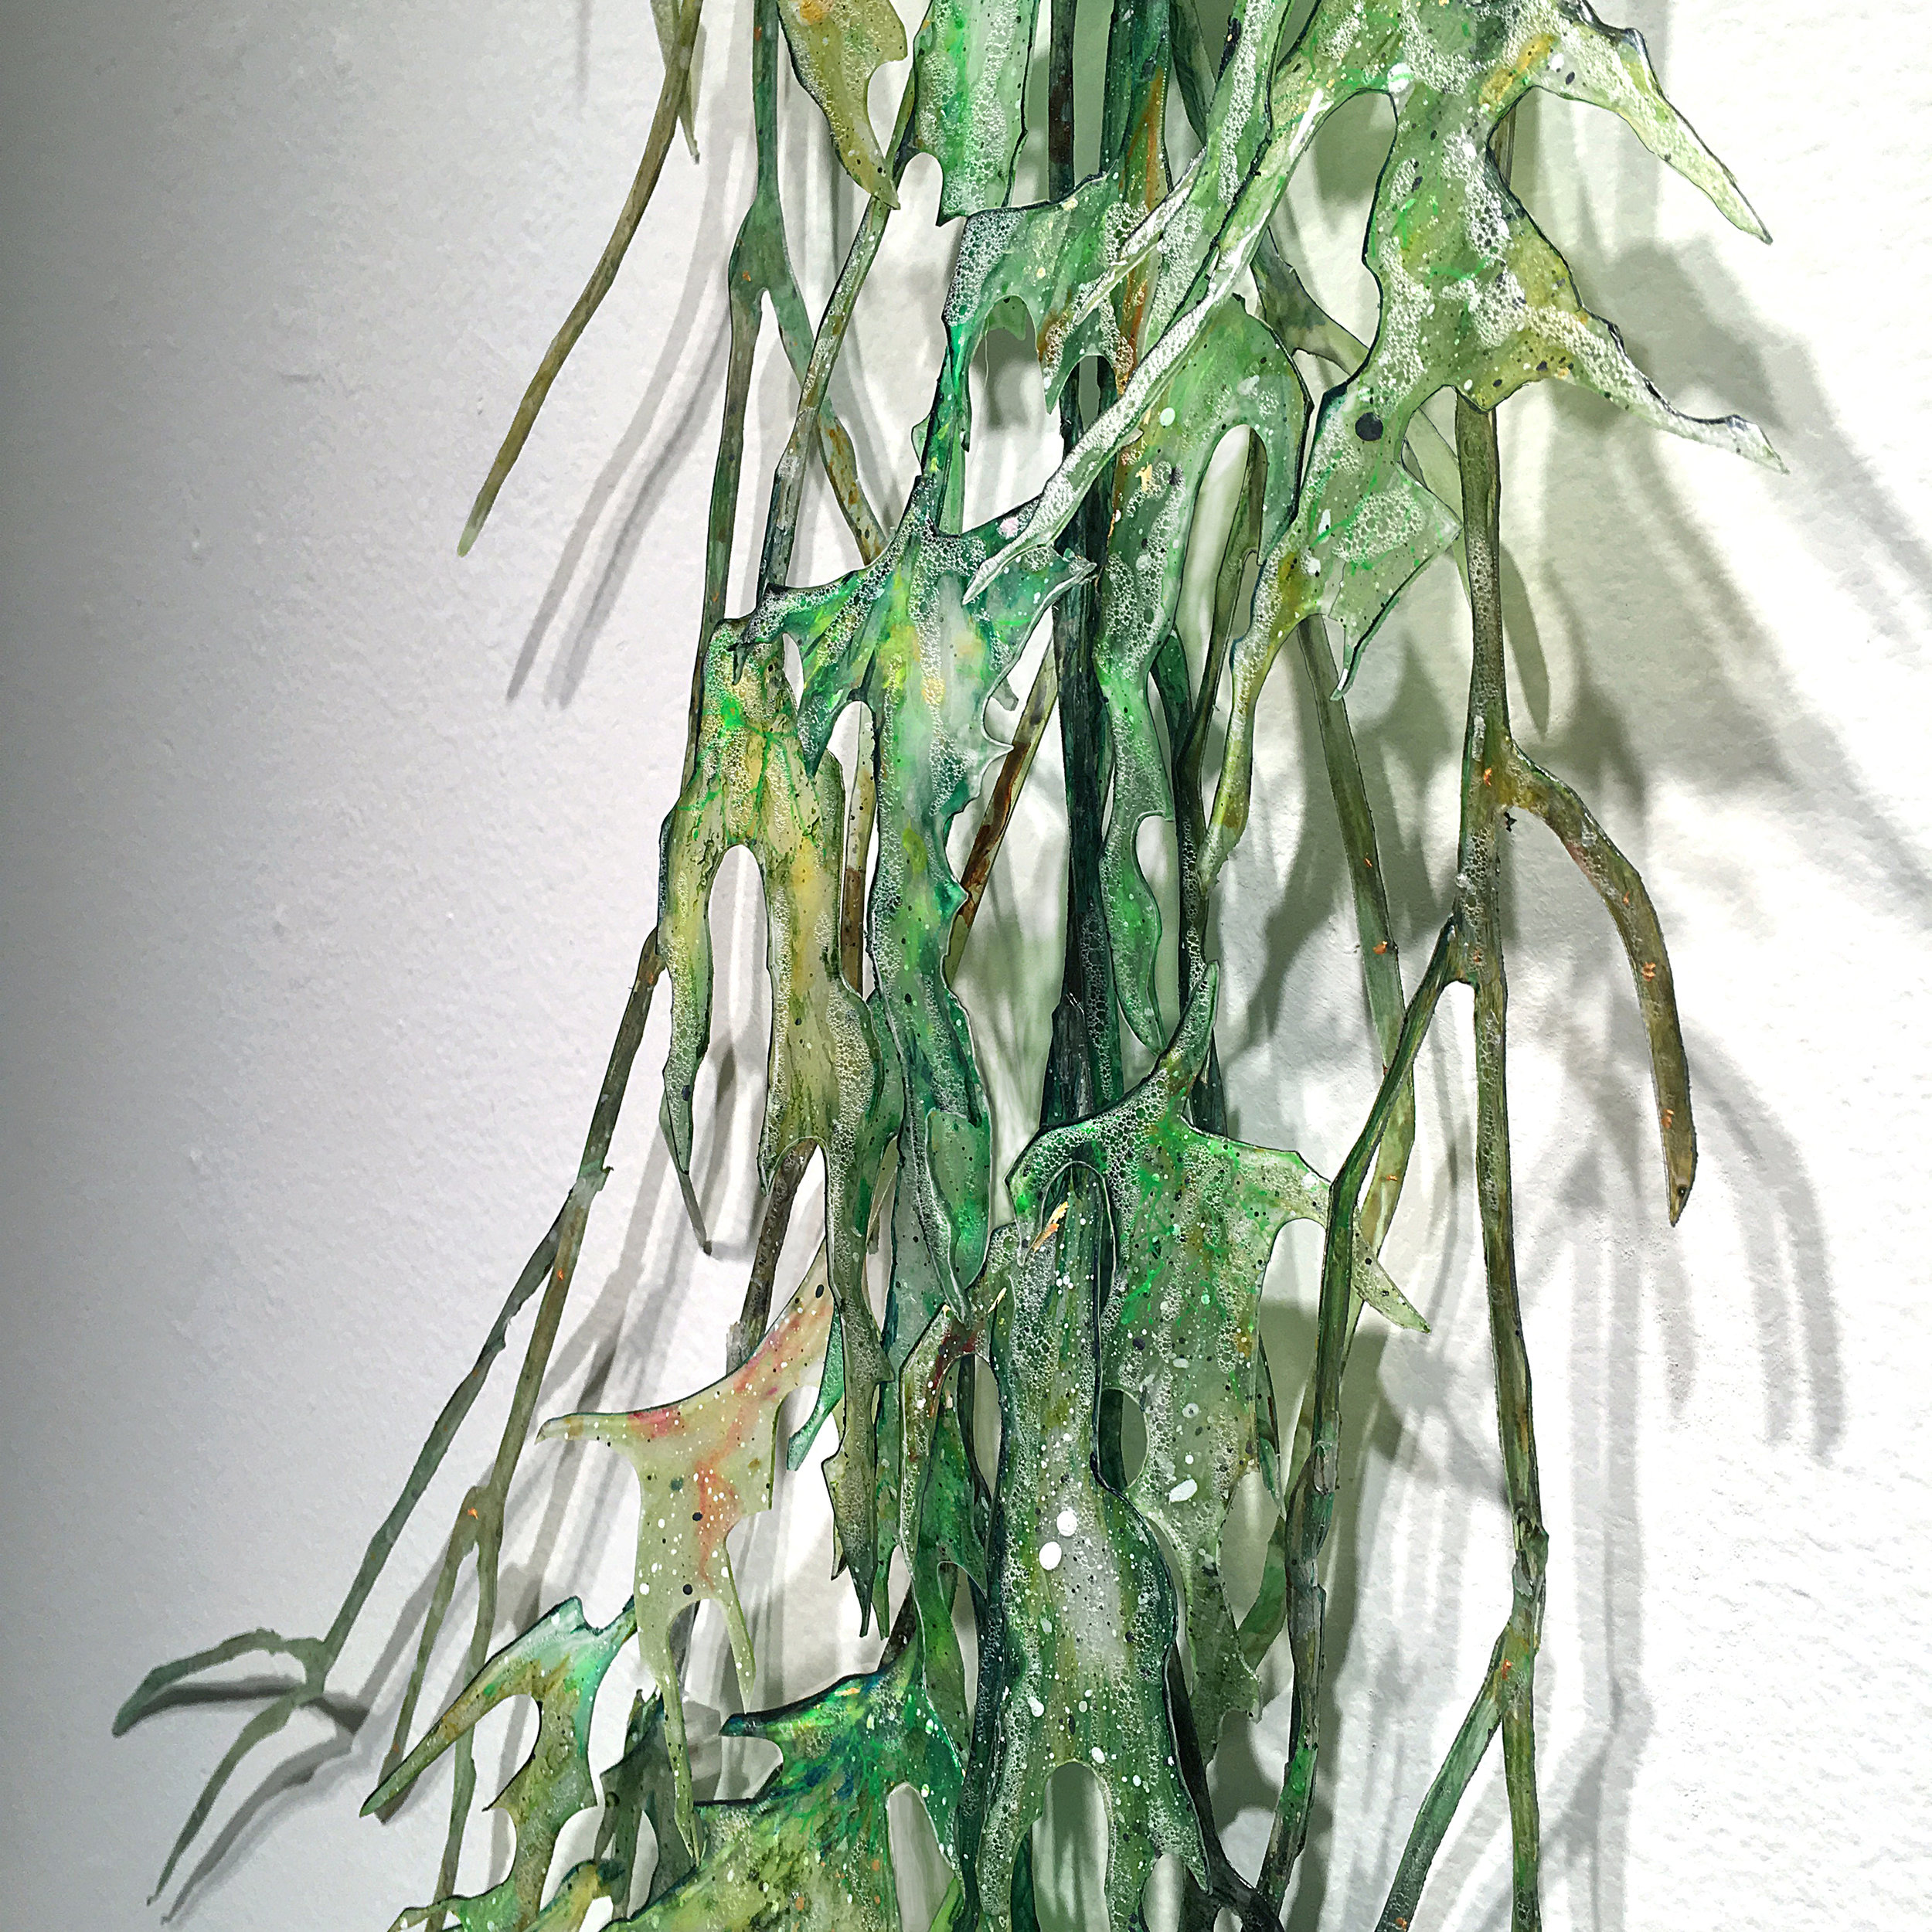 Margaret Smithers-Crump,  Air Roots,  2018, acrylic on recycled hand cut Plexiglas, anthracite, wood, 100 x 27 x 11 inches